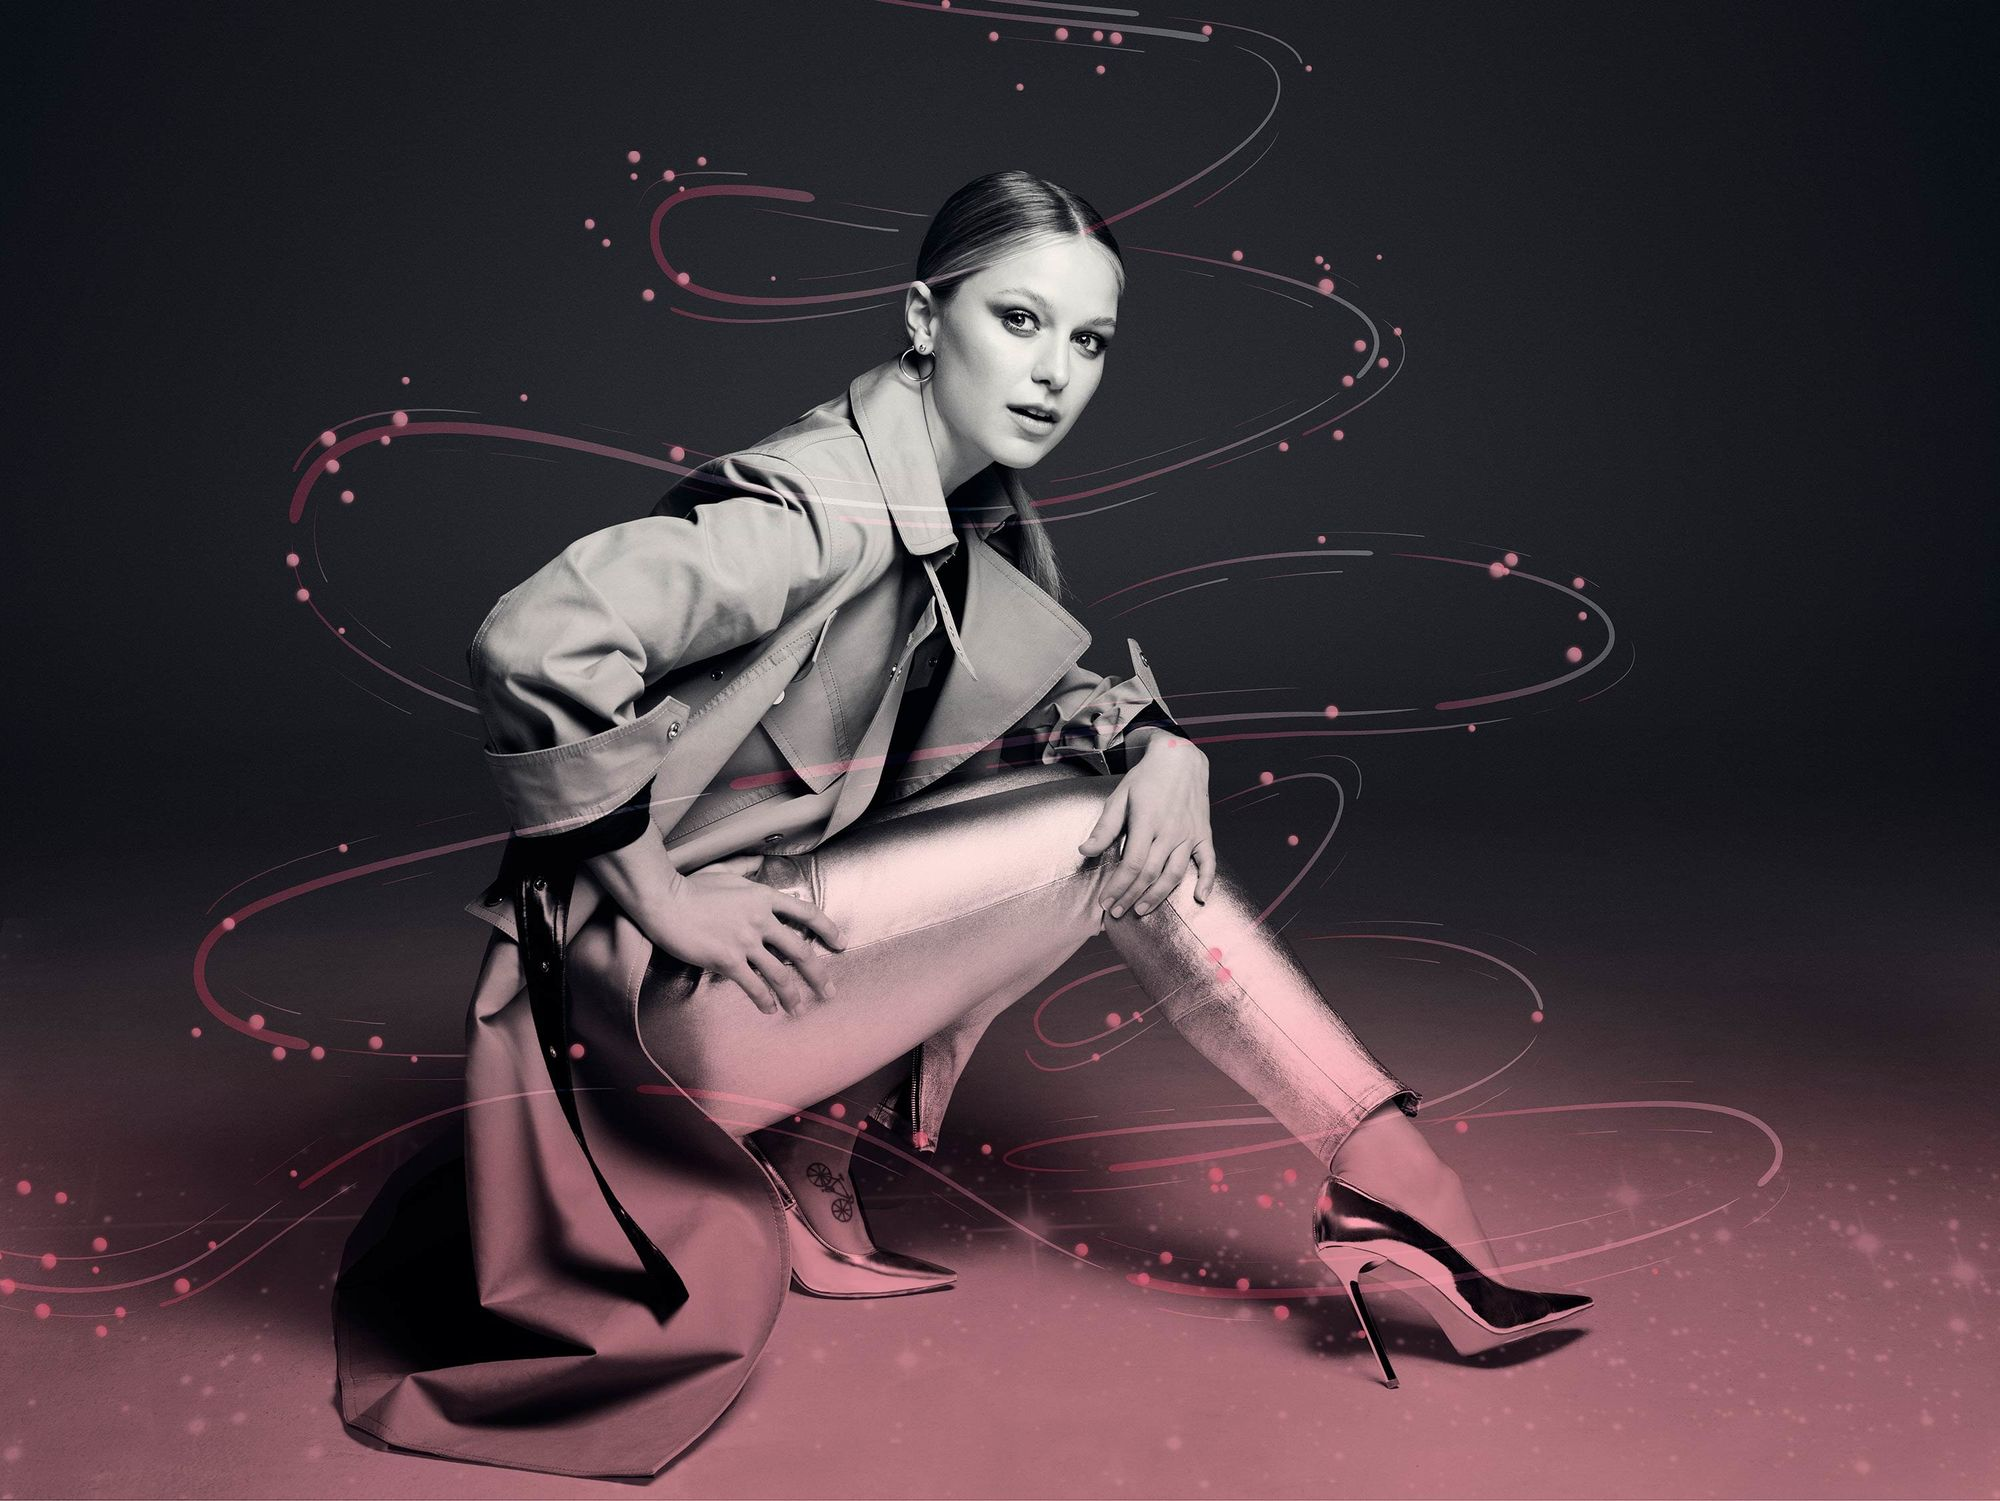 Melissa Benoist posing in a fashion shoot.